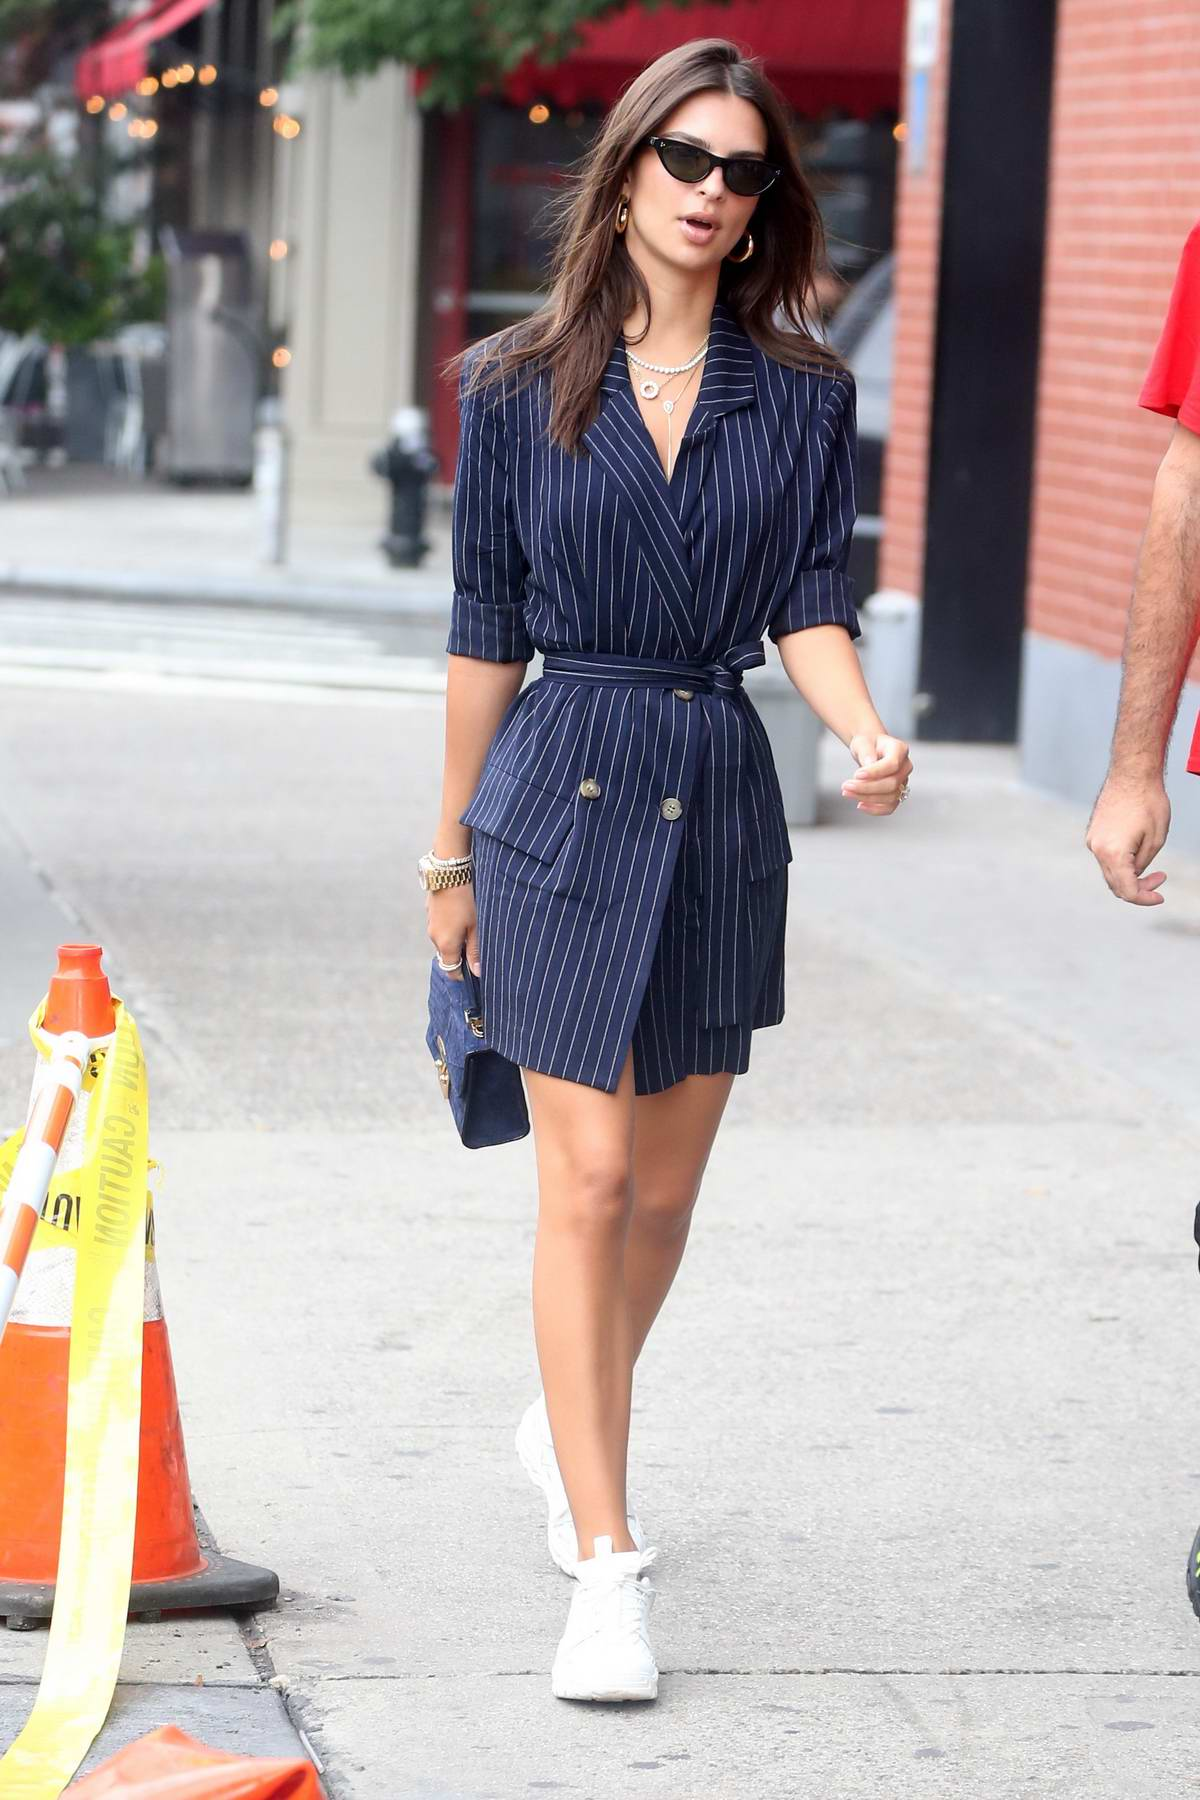 Emily Ratajkowski wears a blue and white pinstriped robe dress with white sneakers while out with a friend in New York City